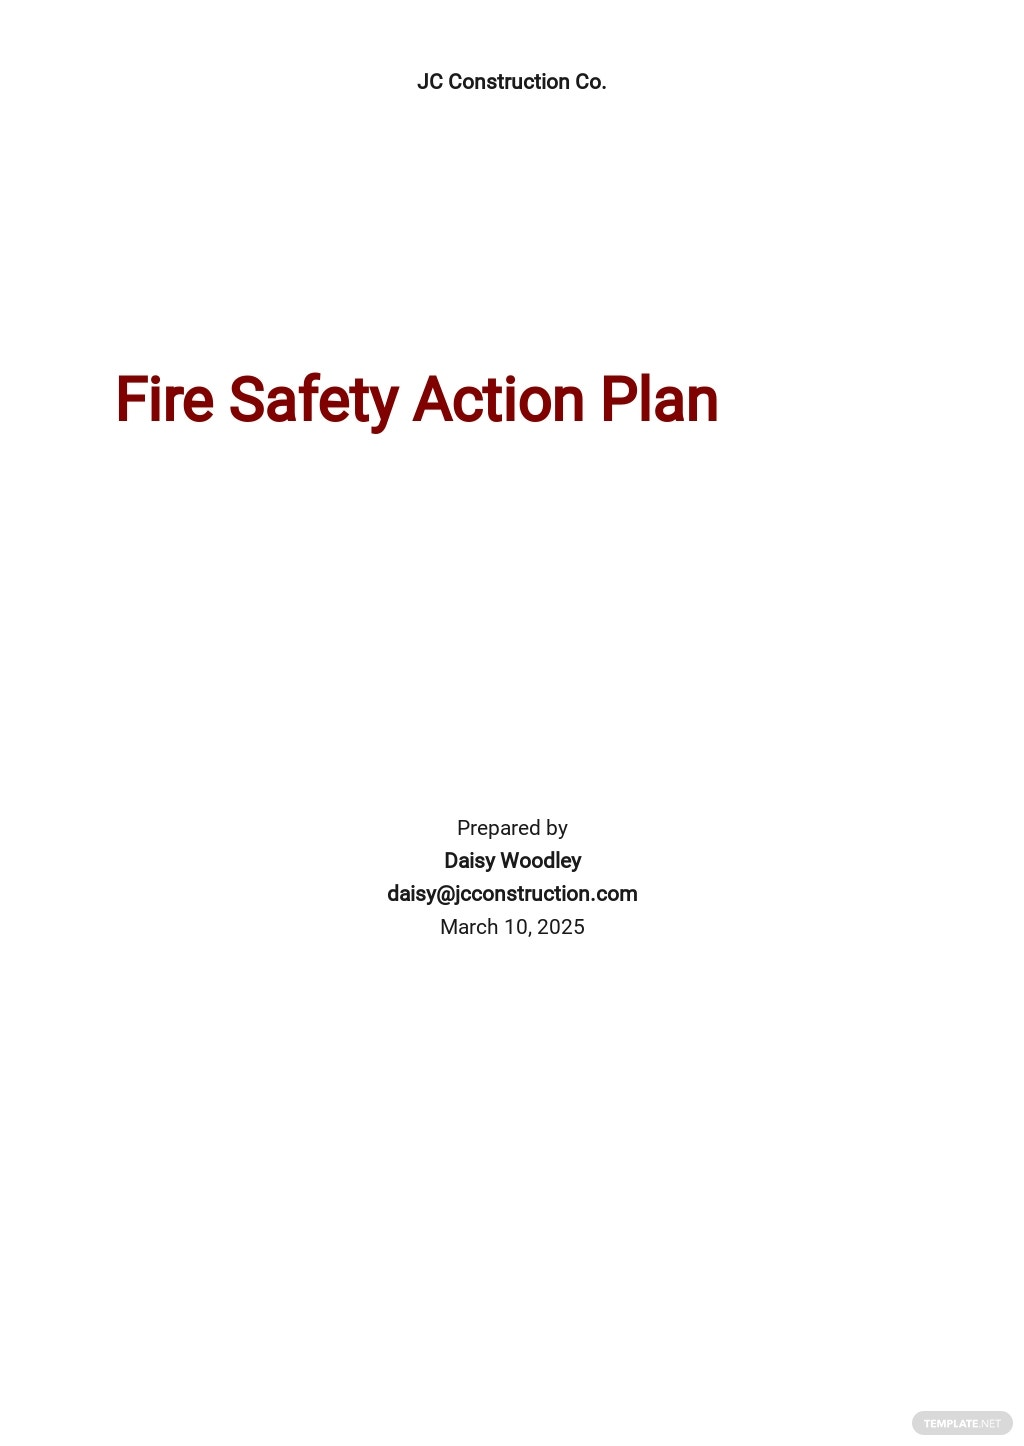 Fire Safety Plan for Construction Site Template